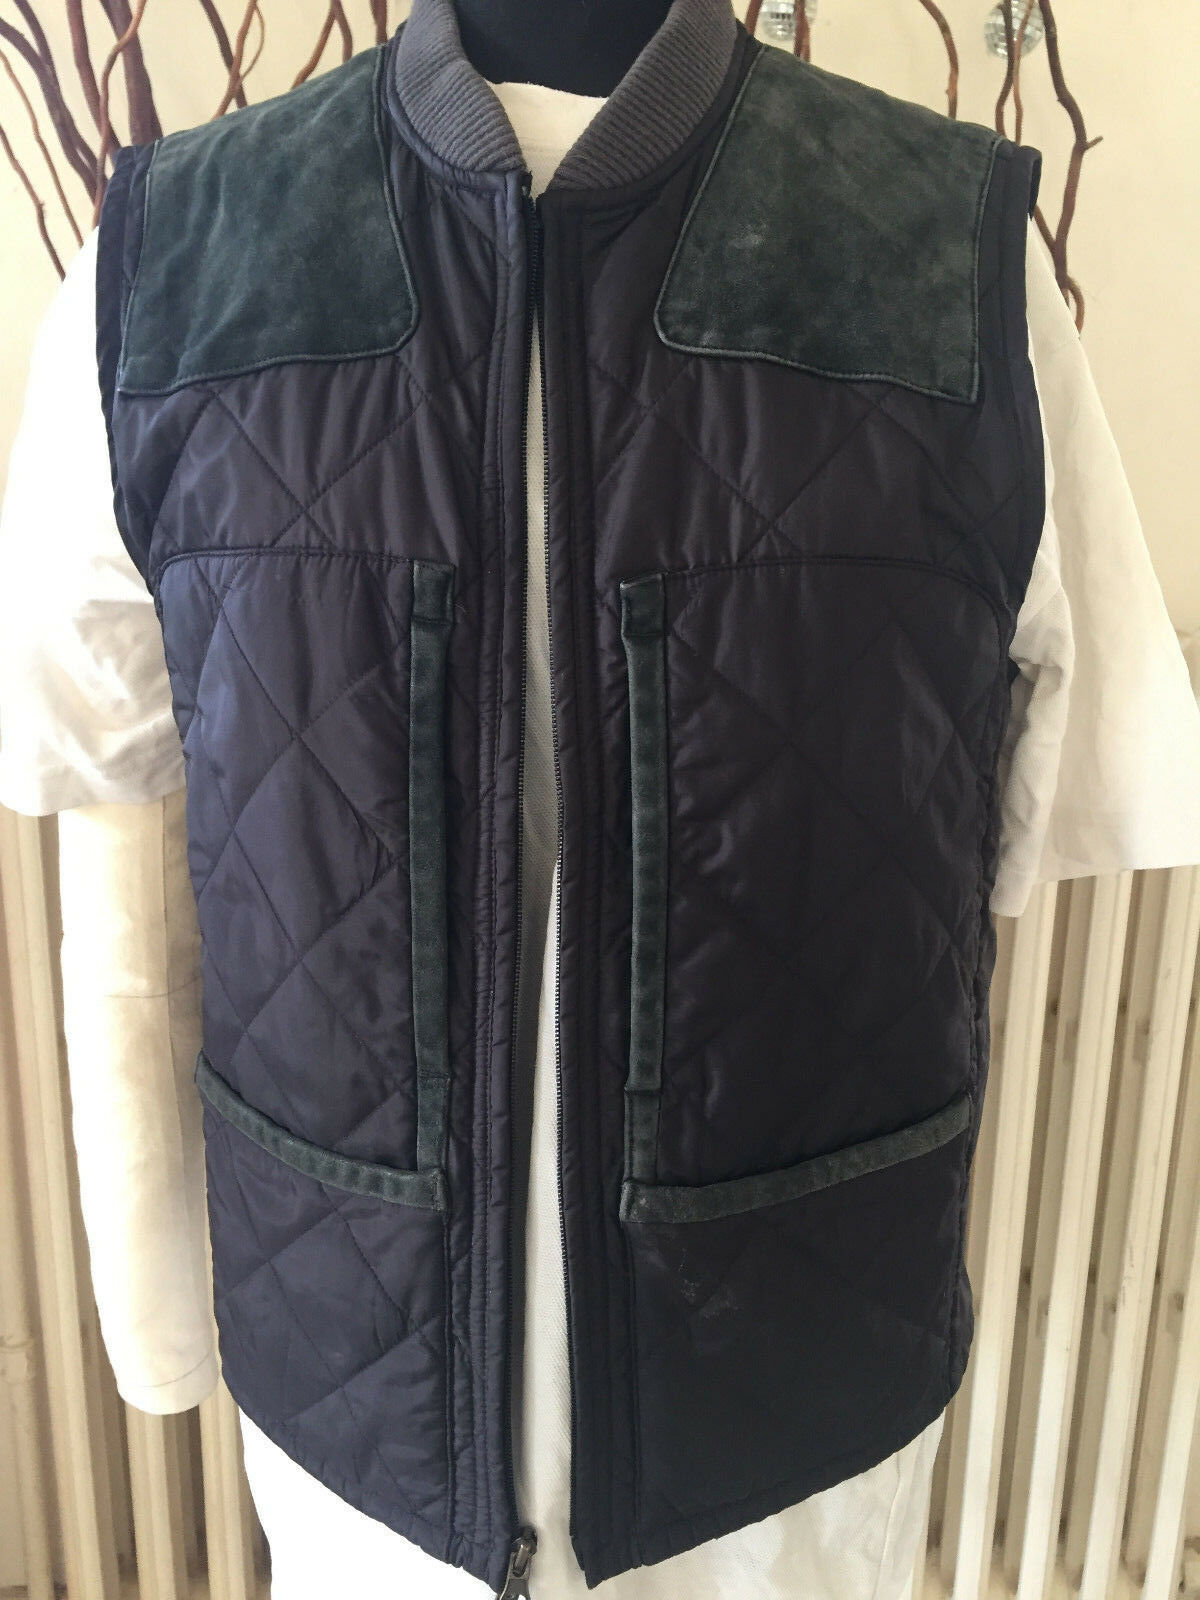 Polo Ralph Lauren navy bluee hunting shooting gilet vest - size small